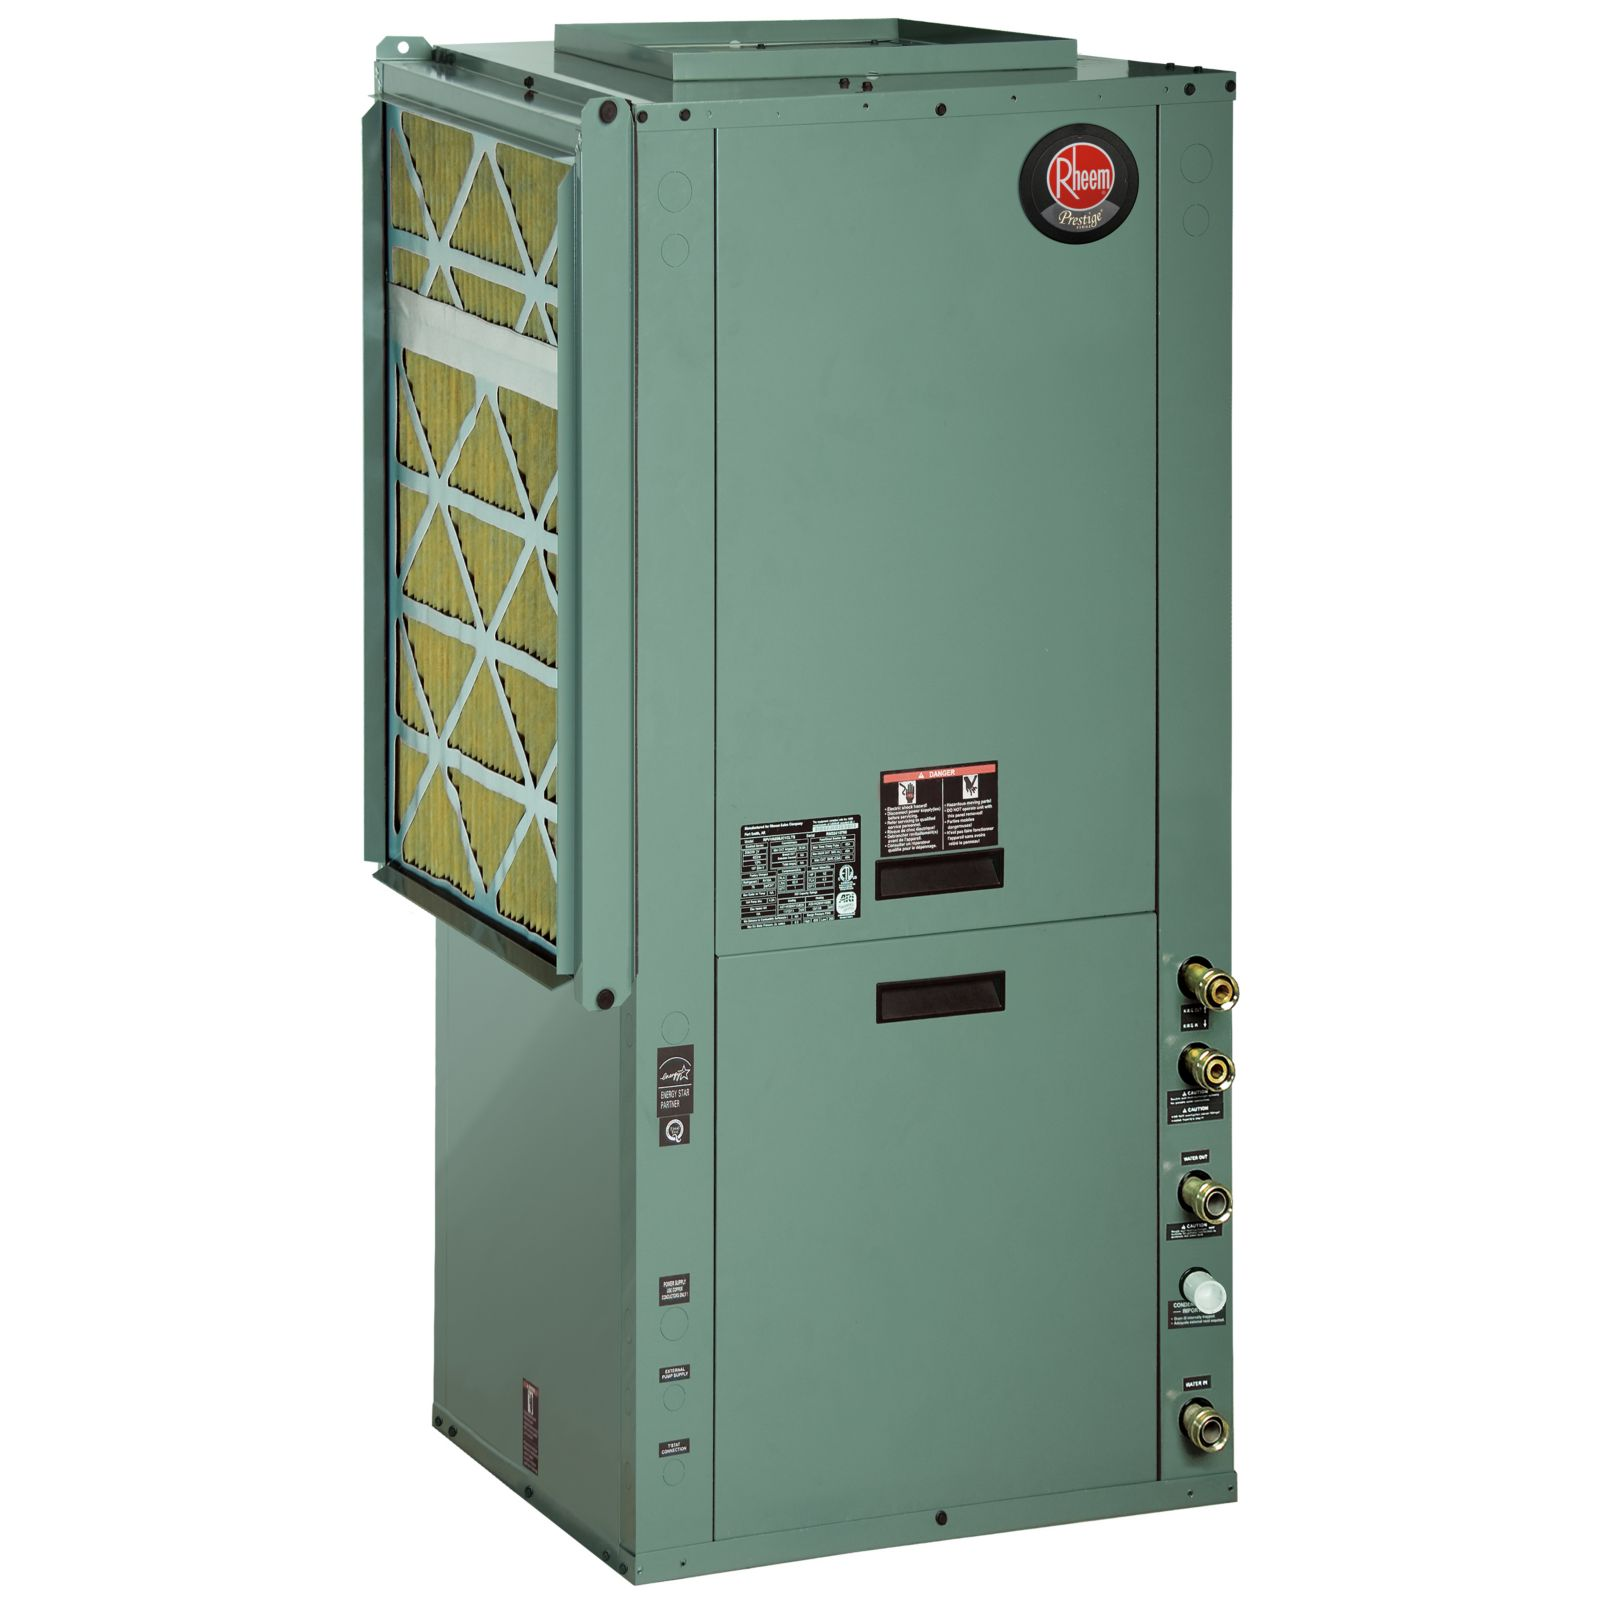 Rheem RPVVA036JC1CLTS - 3 Ton 27 EER Packaged Vertical Geothermal Heat Pump, Copper With Coated Air Coil, Left Return